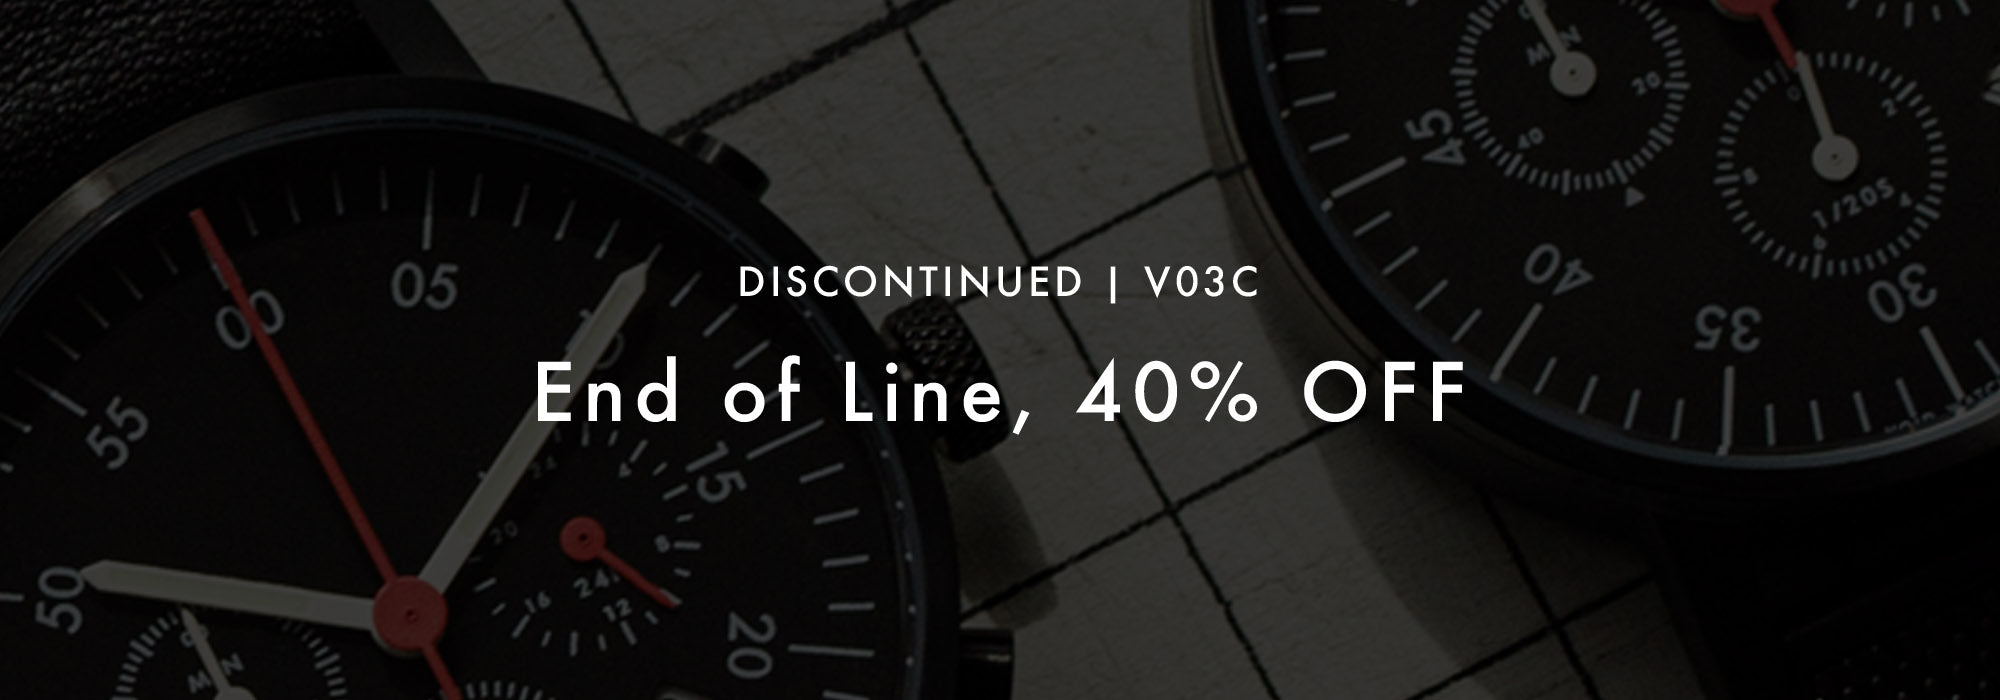 VOID Watches End of Line Sale - V03C Chronograph